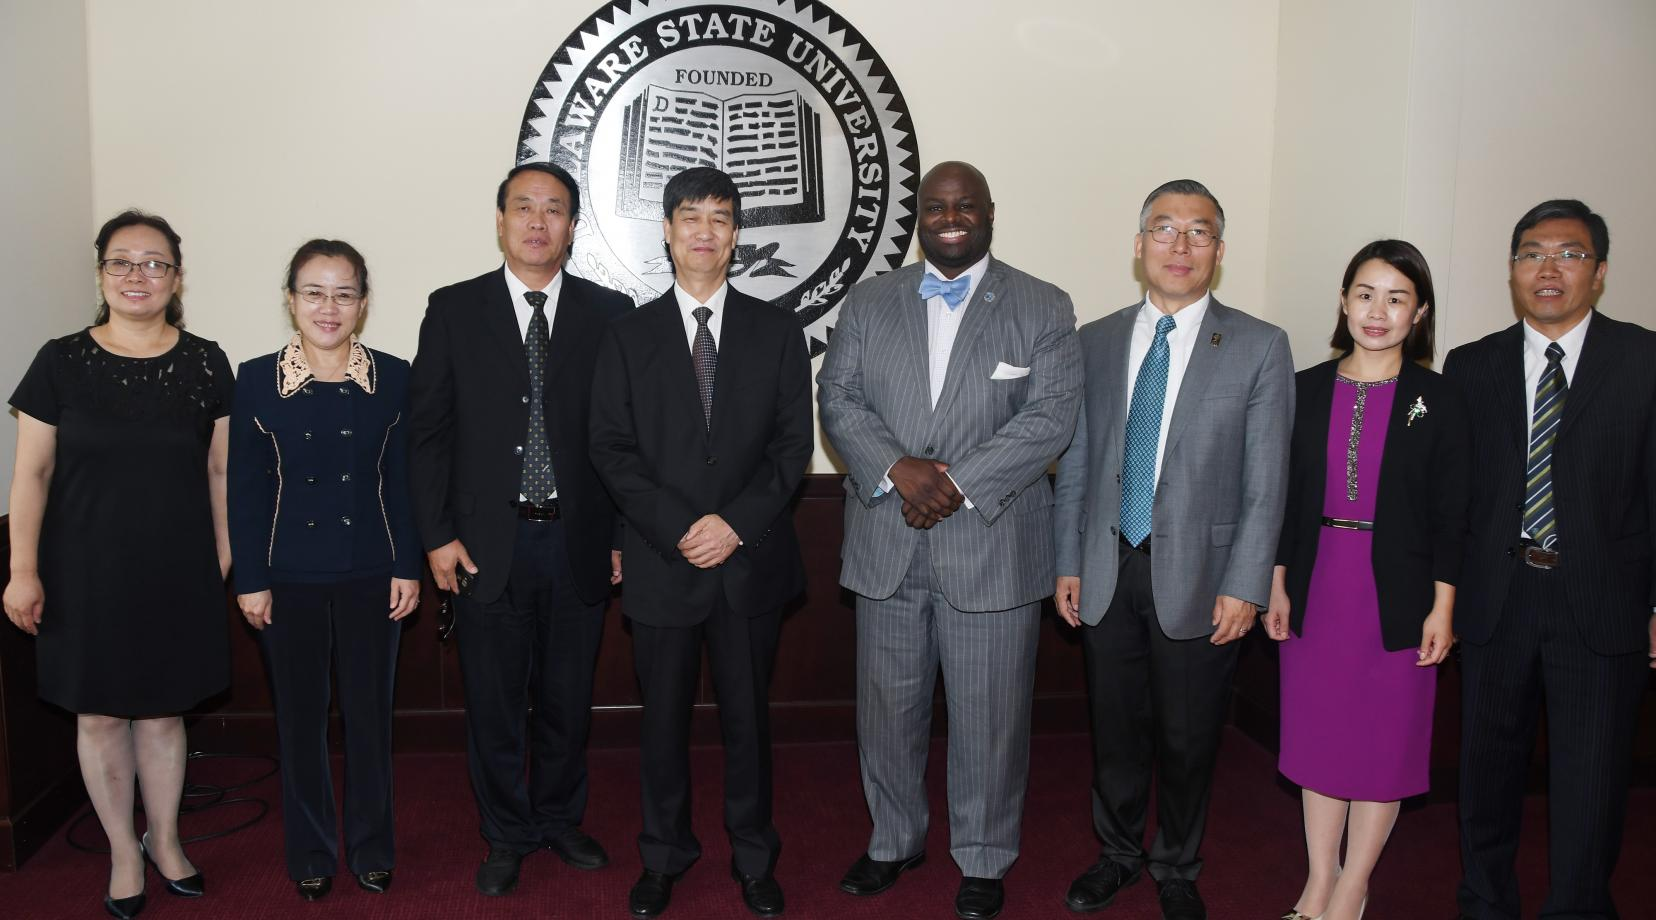 (L-r) Dr. Tian Yi, DU director of DU College of Music; Dr. Zhang Guoqiang, director of DU College of Foreign Languages; Dr. Xu Jing, director of Academic Affairs; Dr. Liu Wenlie, DU chairman; DSU Provost Tony Allen; Dr. Fenghan Liu, DSU associate vice president of International Affairs; Dr. Du Yali, DU director of International Exchange and Cooperation; and Jiao Dejie, DU director of the College of Life Science.